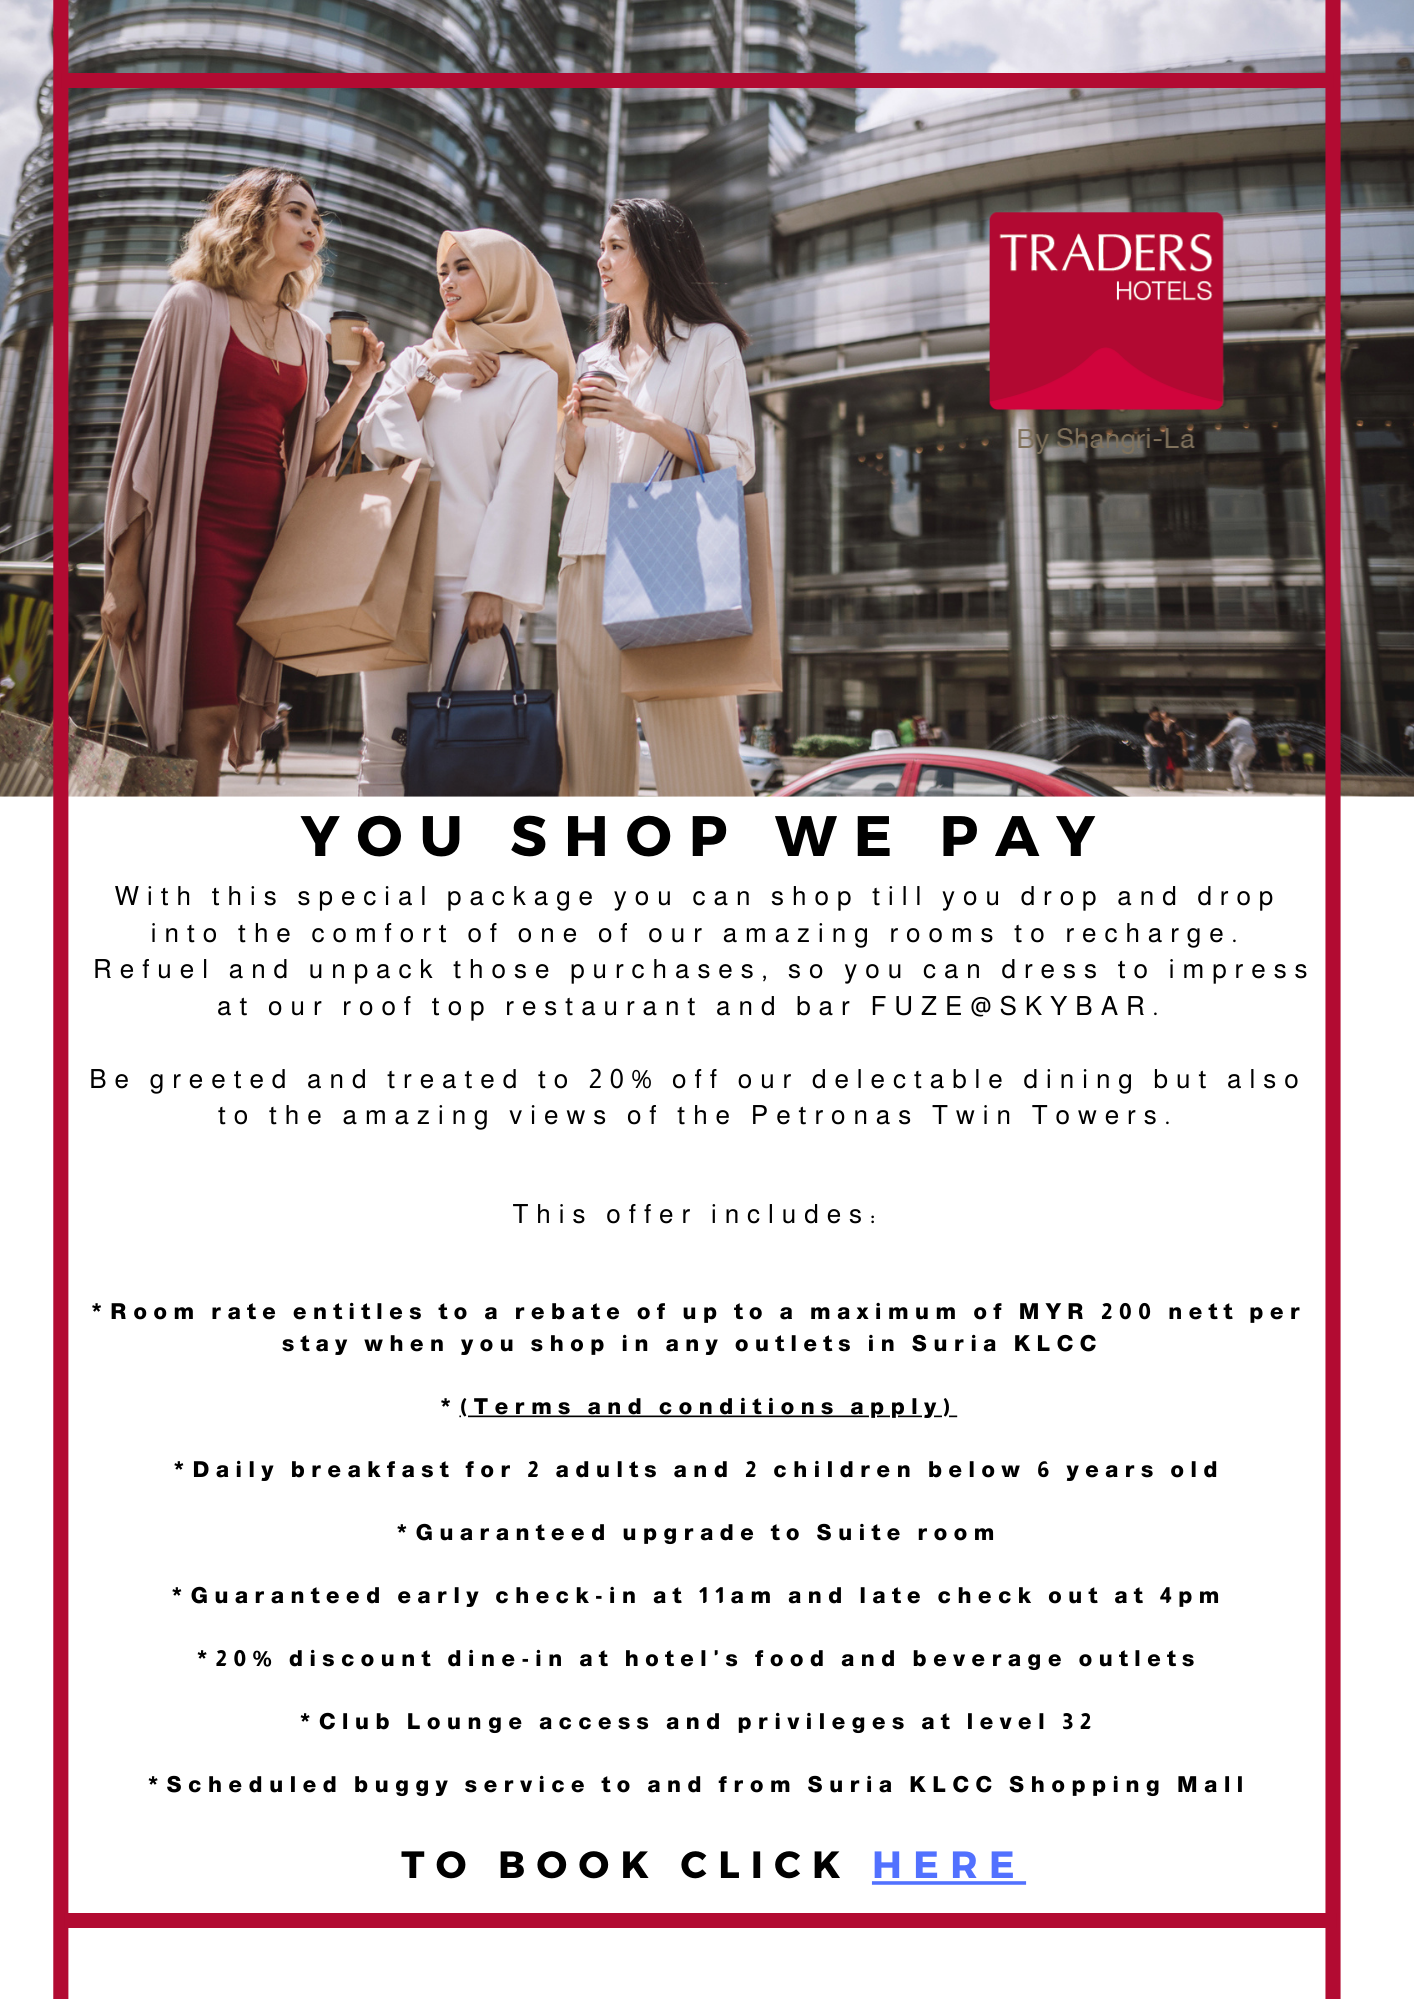 You Shop We Pay